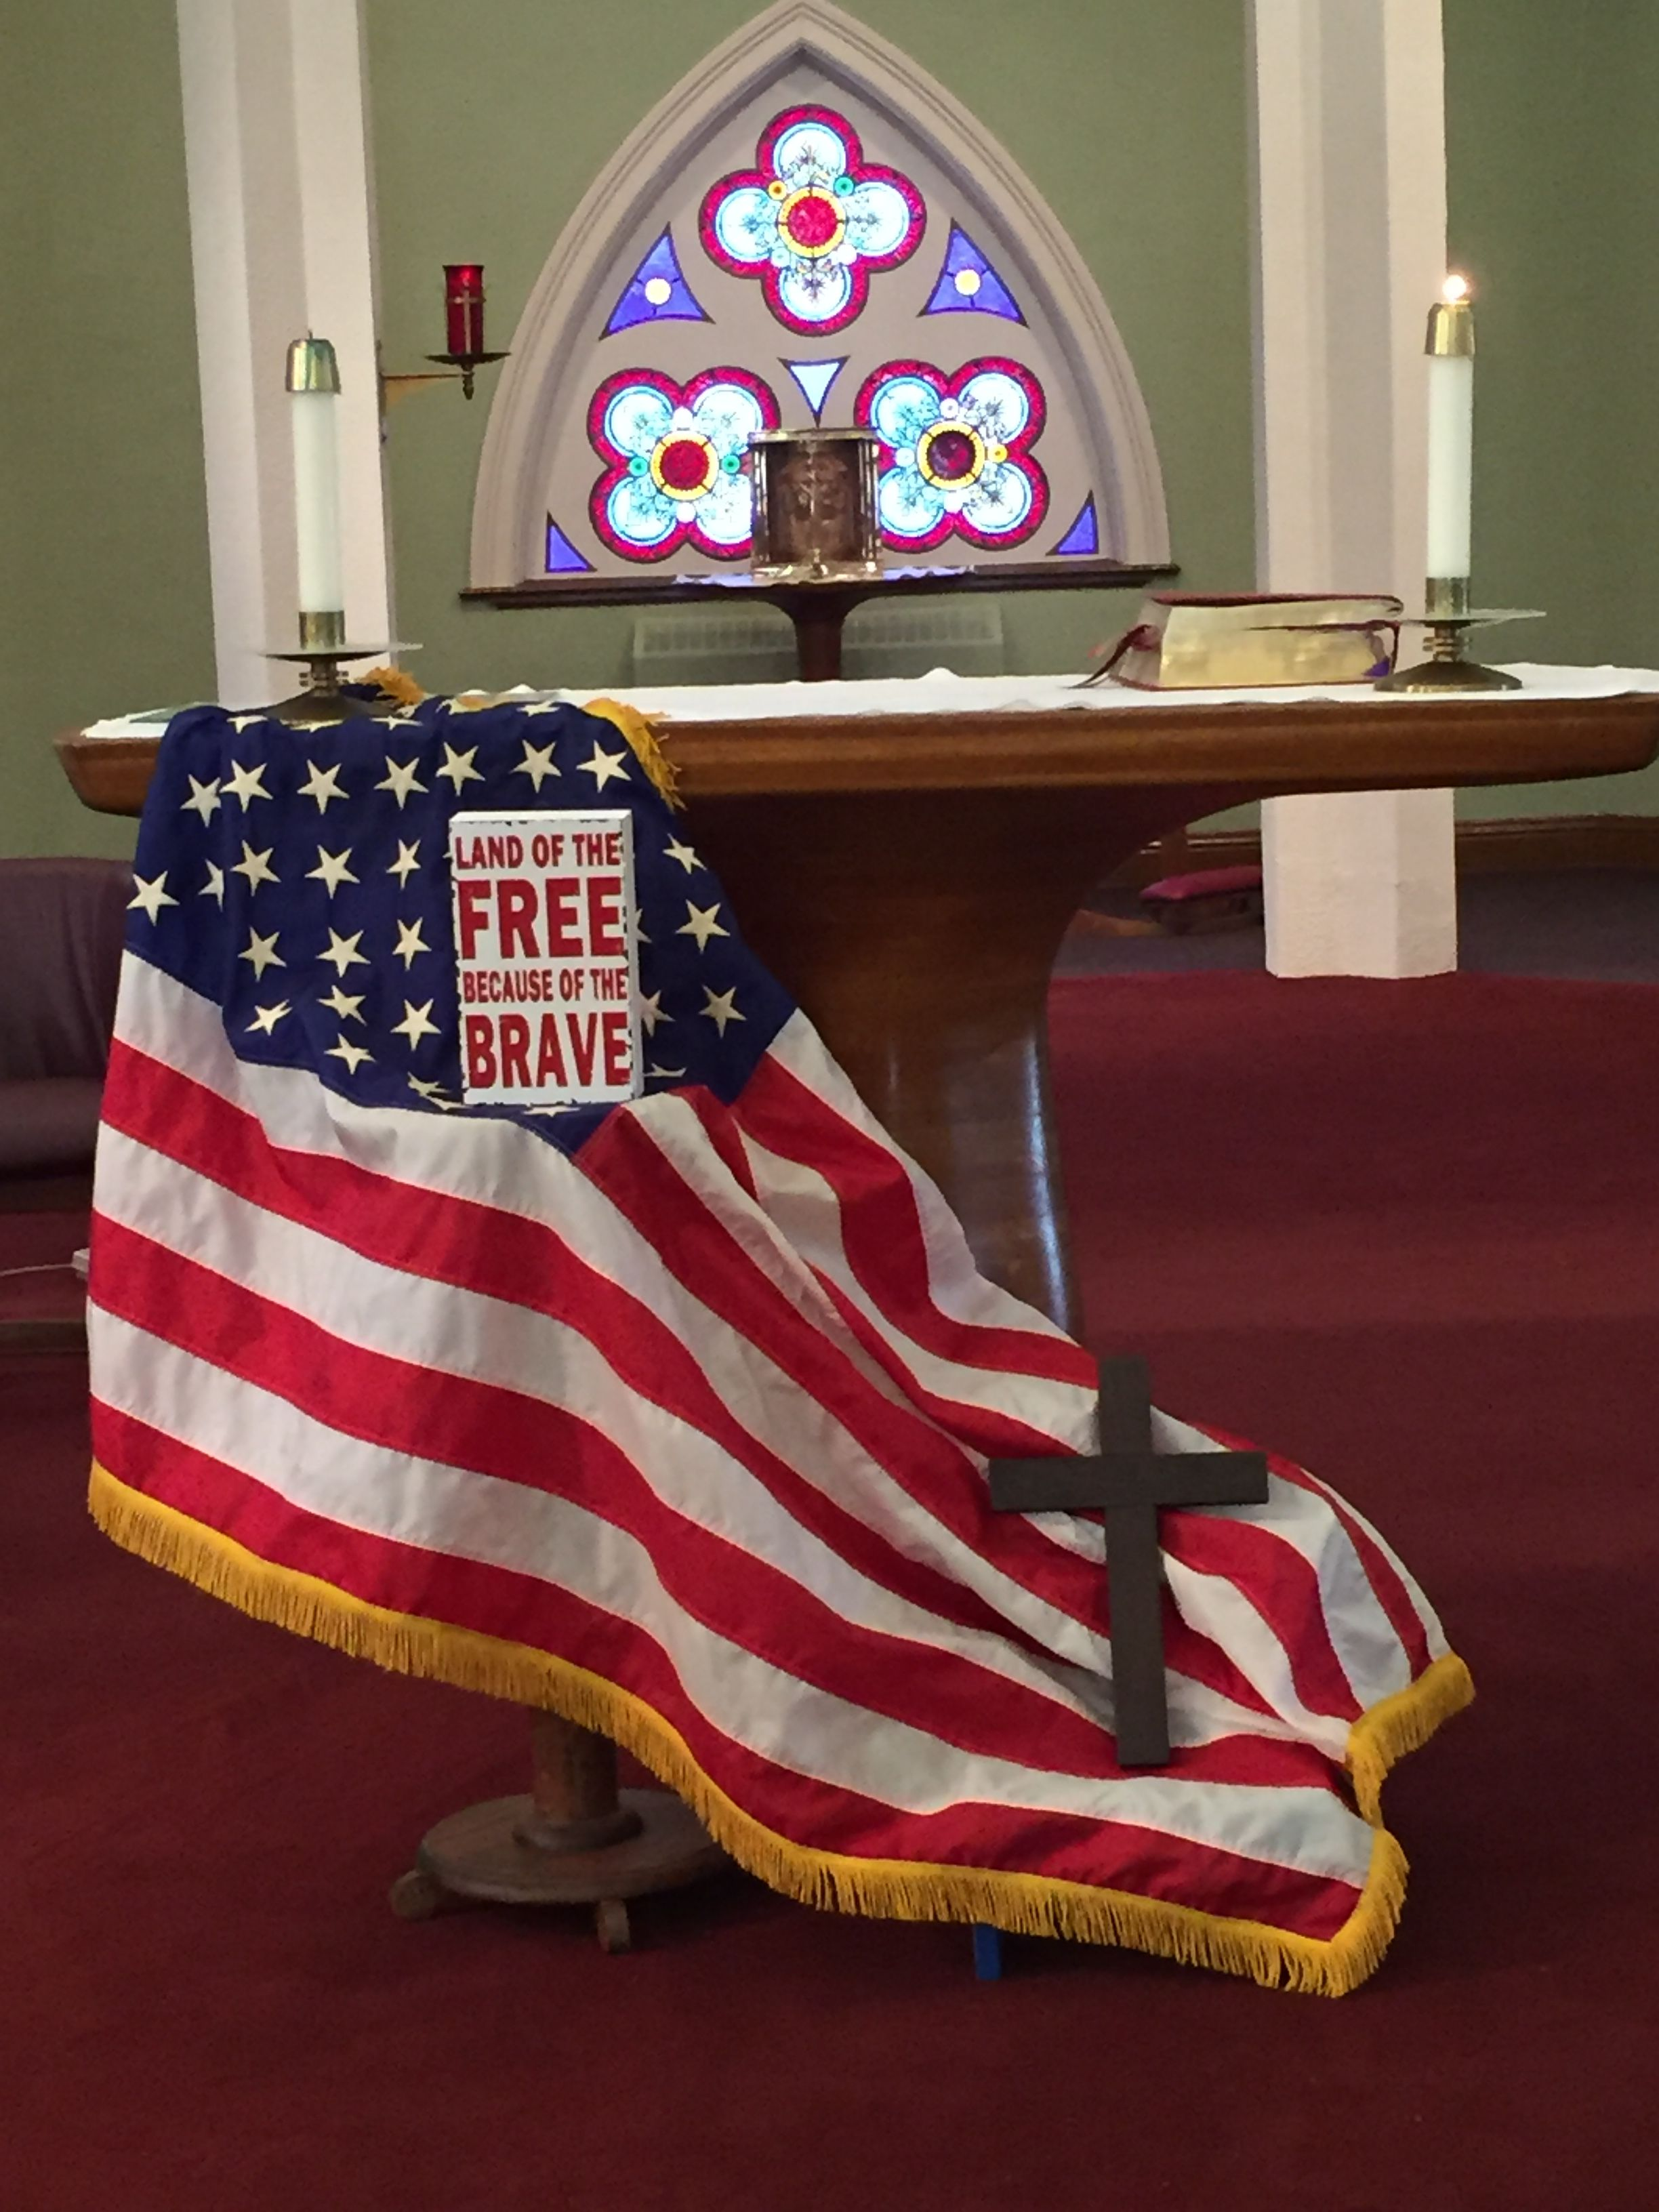 Memorial Day 2016 | Church altar decorations, Church display, Memorial day decorations